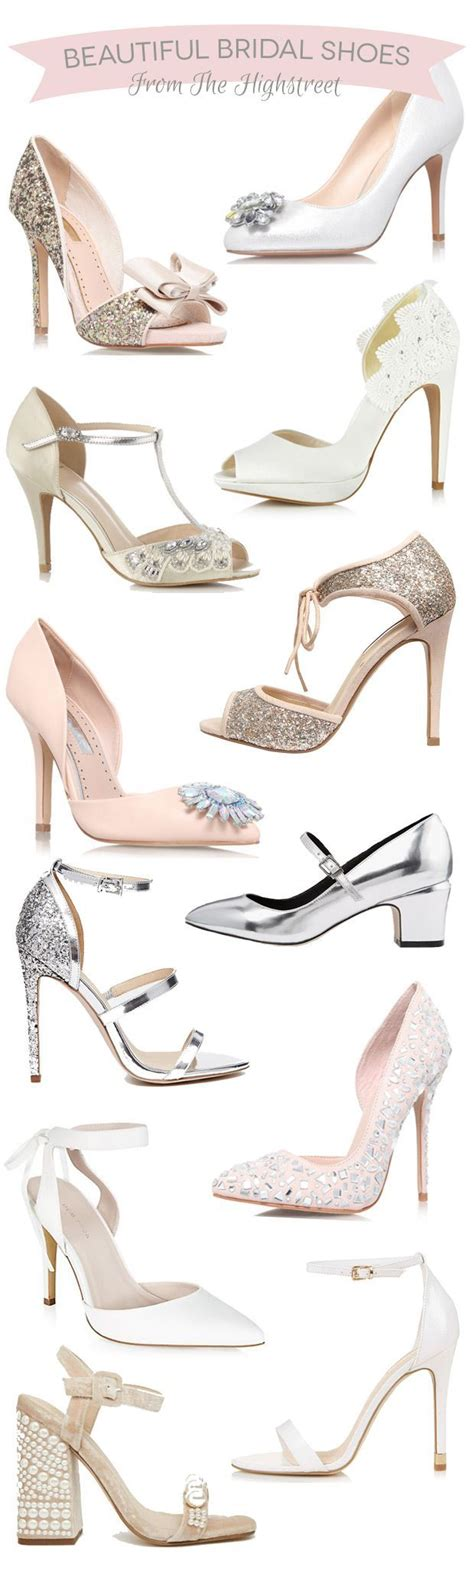 Wedding Shoes On A Budget by 42 Best Wedding Shoes To Die For Images On